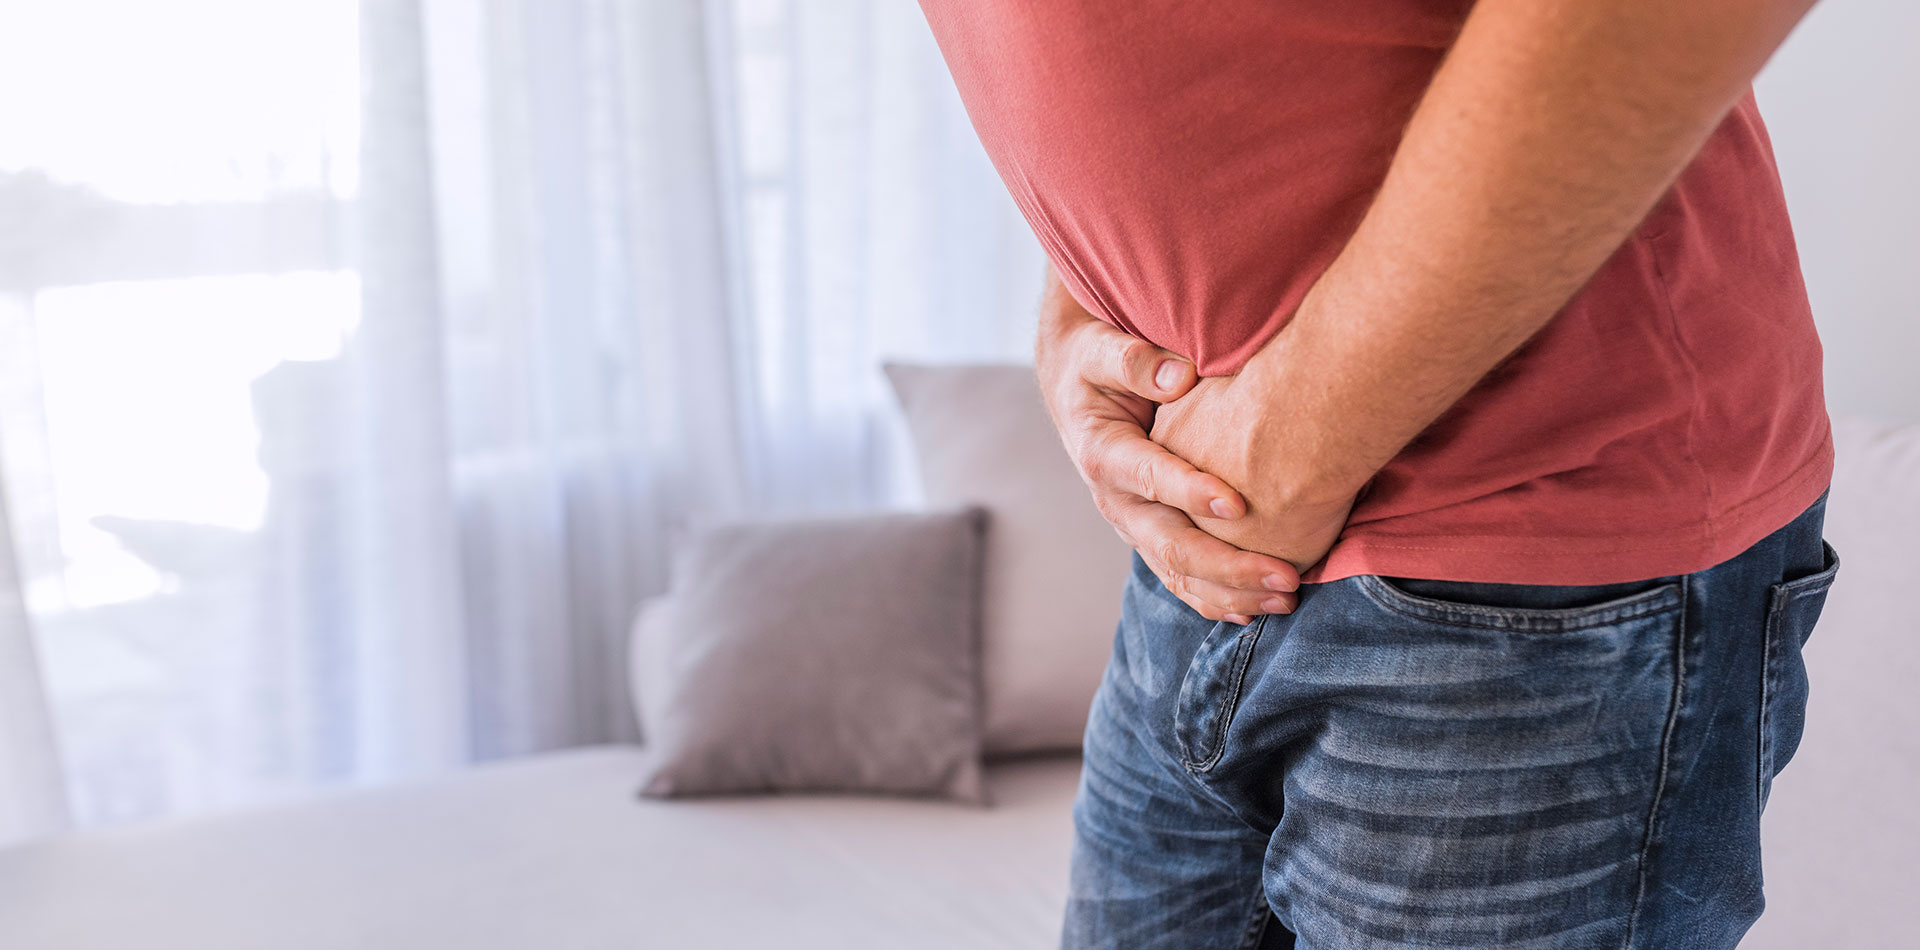 5 Tips to Manage a Leaky Bladder